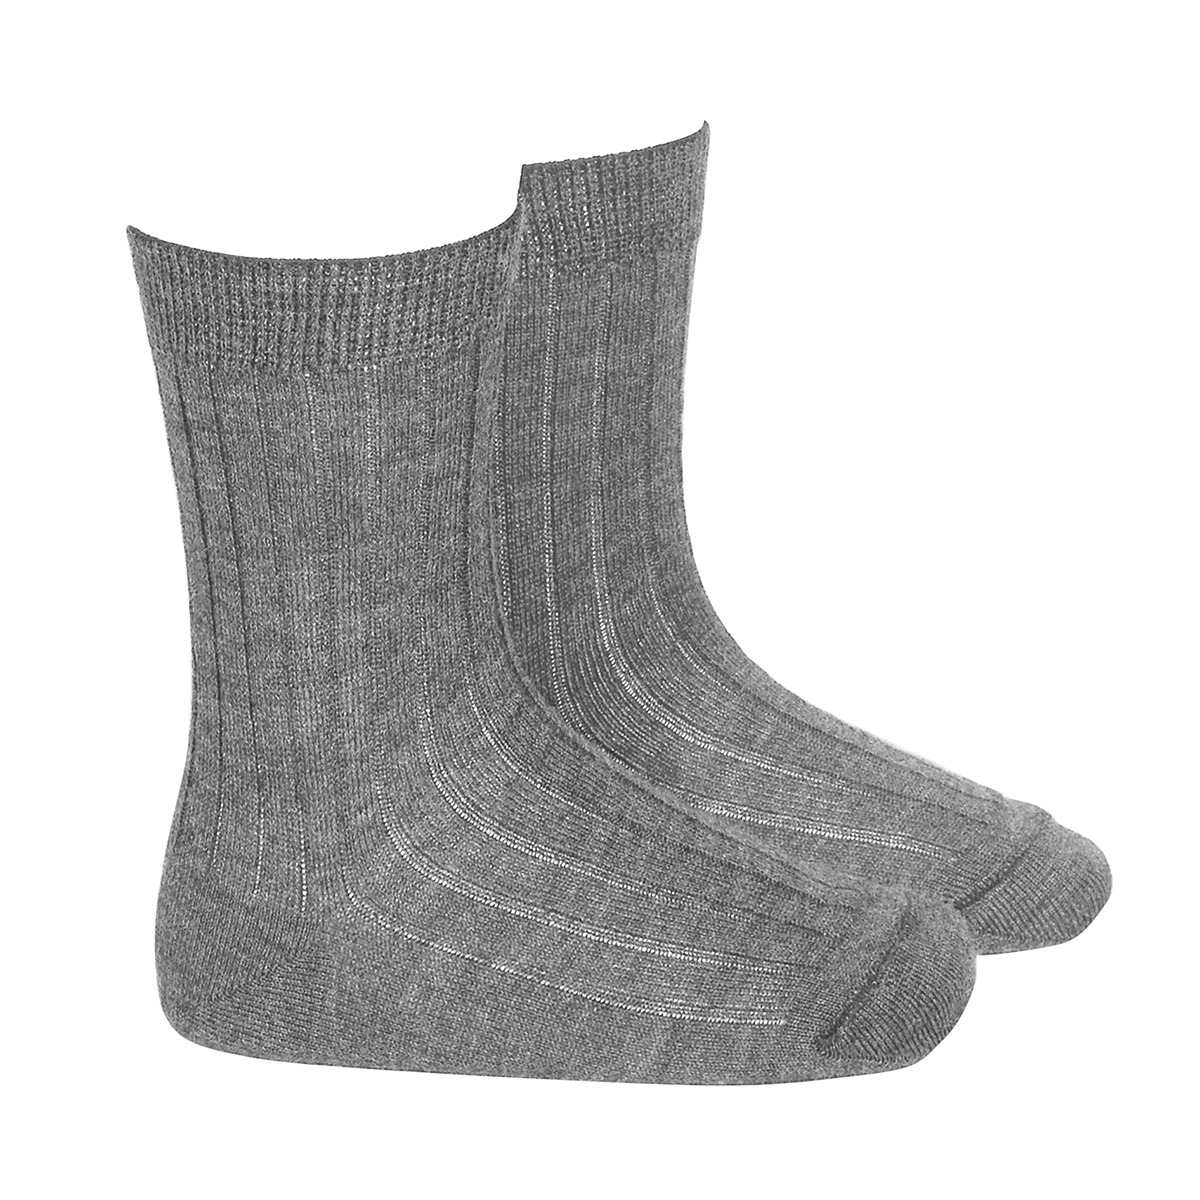 Condor Merino Wool Rib Socks in Grey